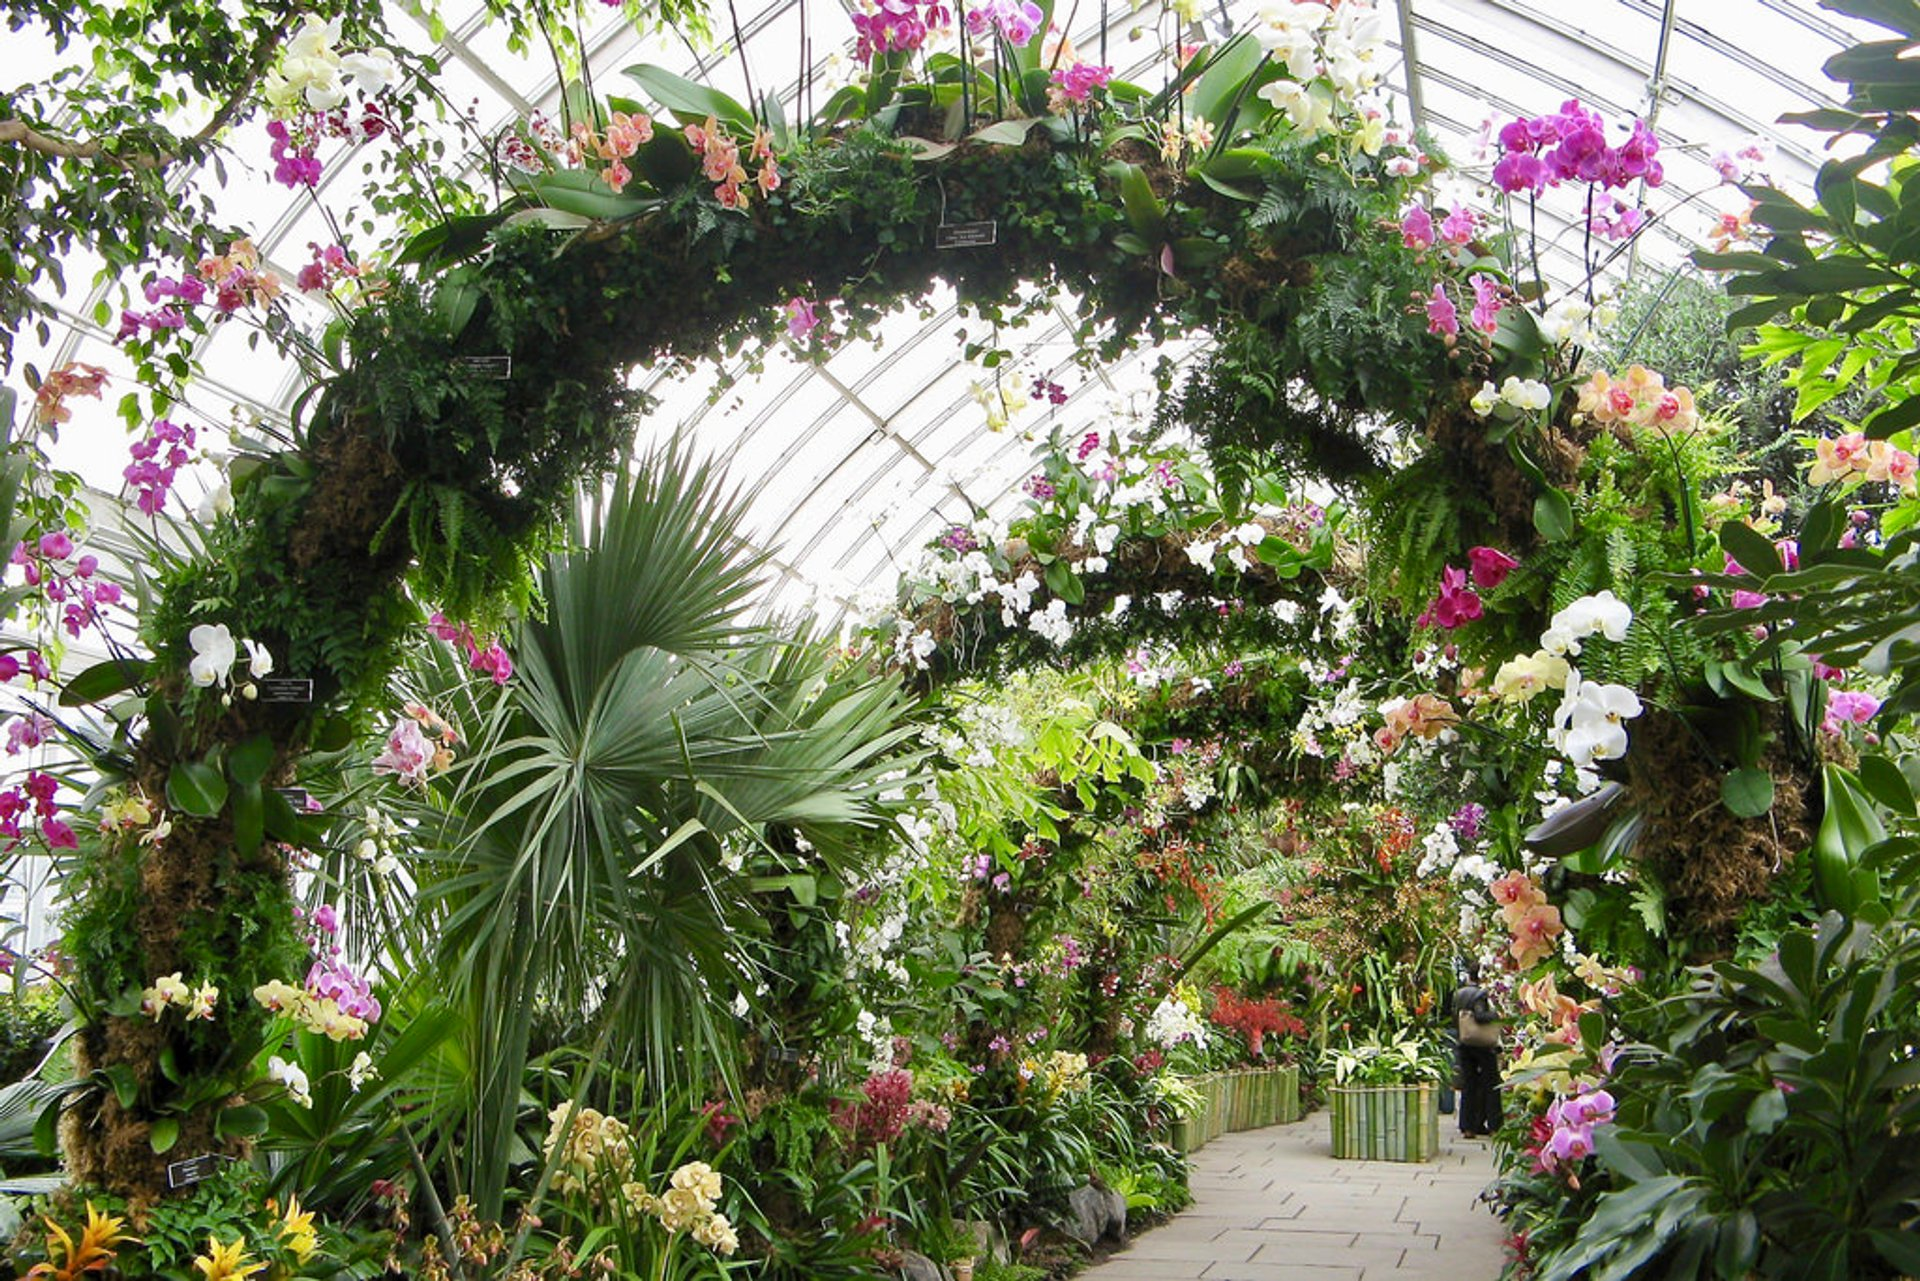 Nybg orchid show 2019 in new york dates map - New york botanical garden directions ...